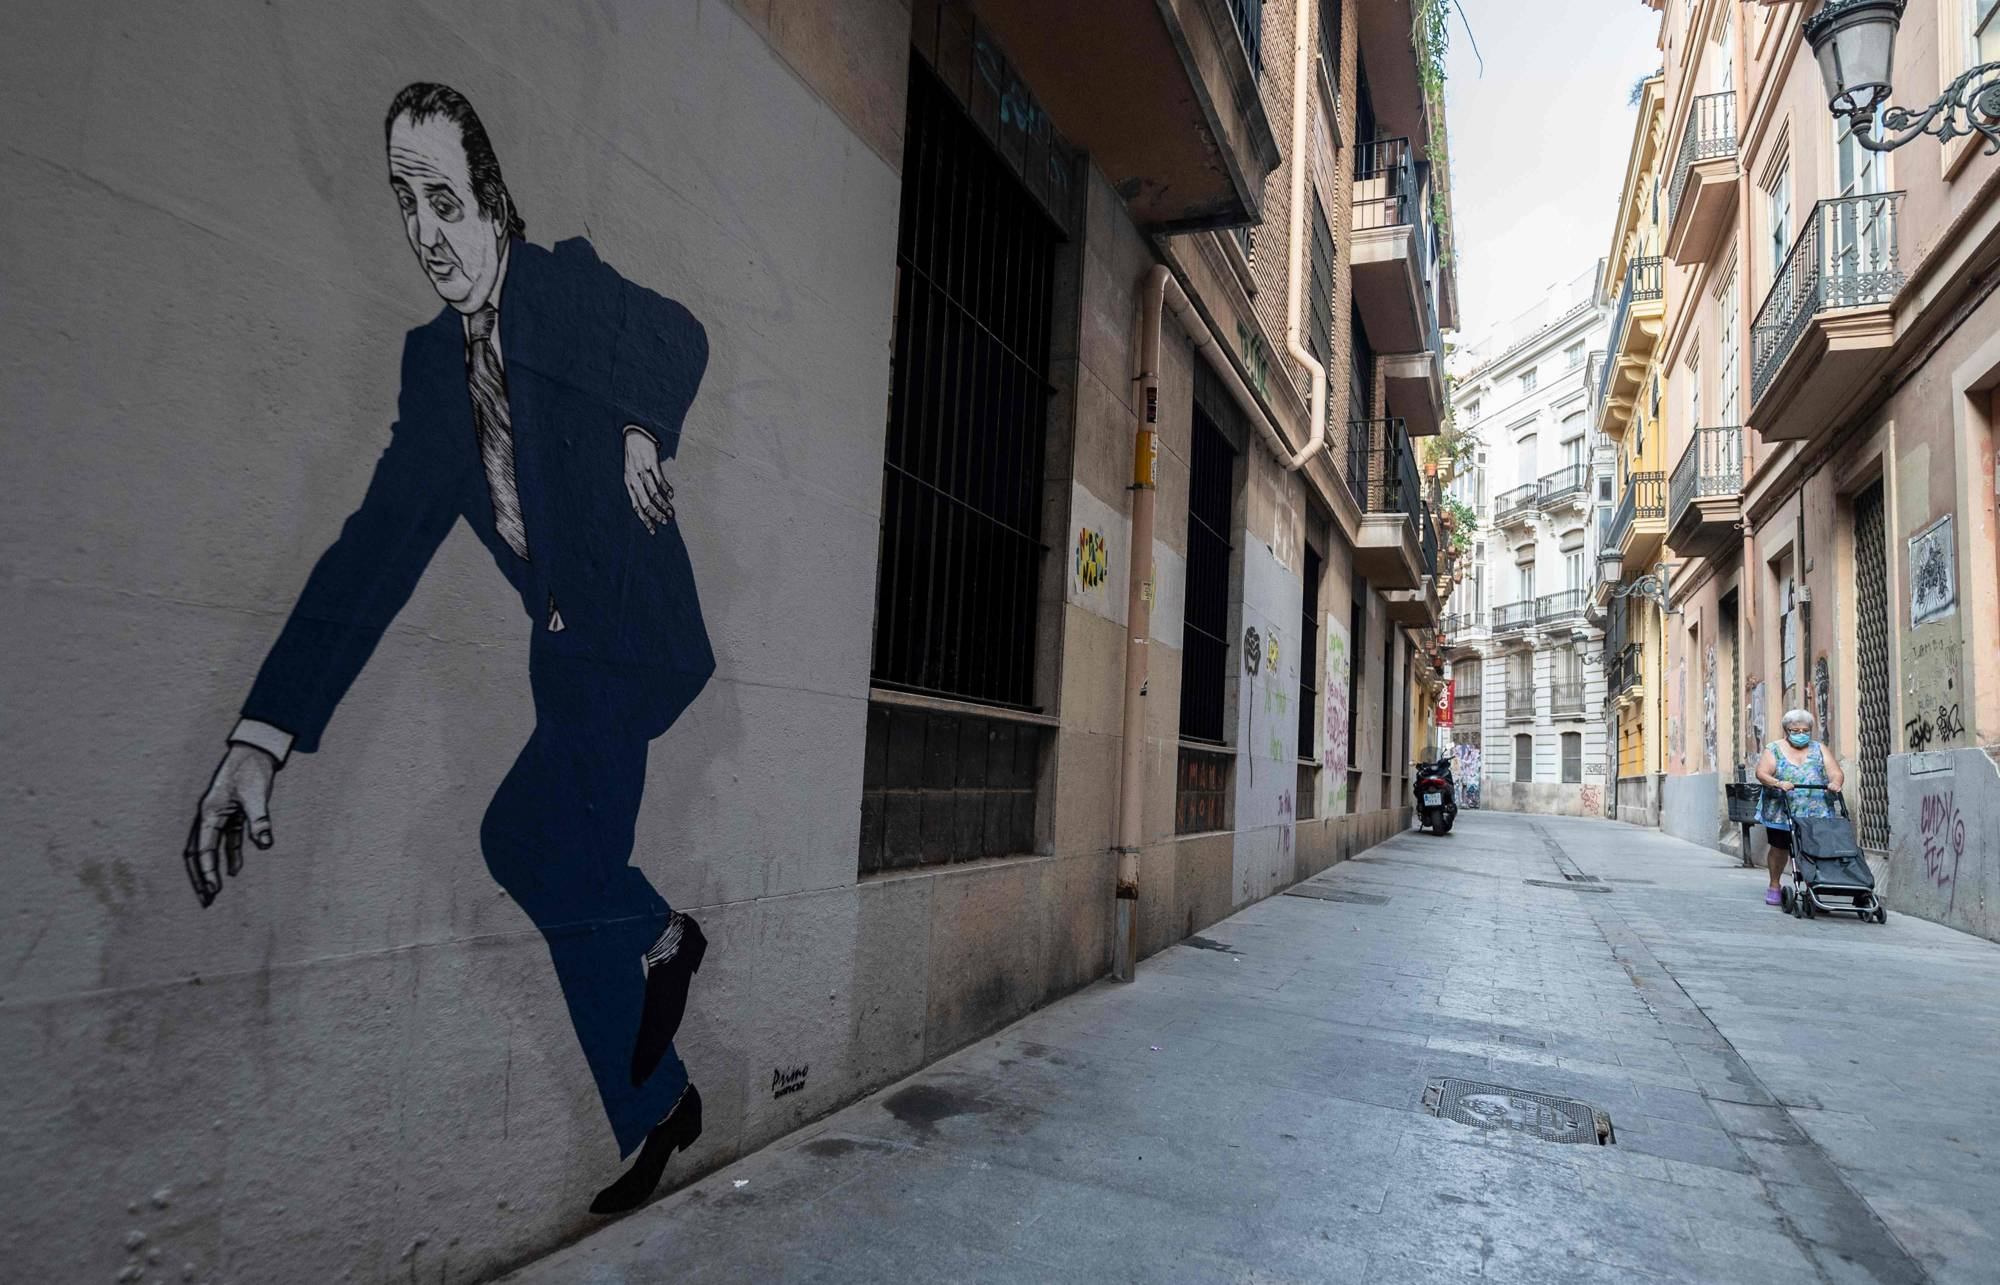 A mural of former Spanish King Juan Carlos by graffiti artist El Primo de Bansky covers the side of a building in Valencia, Spain. The 82-year-old announced on Aug. 3 that he was leaving Spain to prevent his personal affairs from undermining his son King Felipe VI's reign. | AFP-JIJI